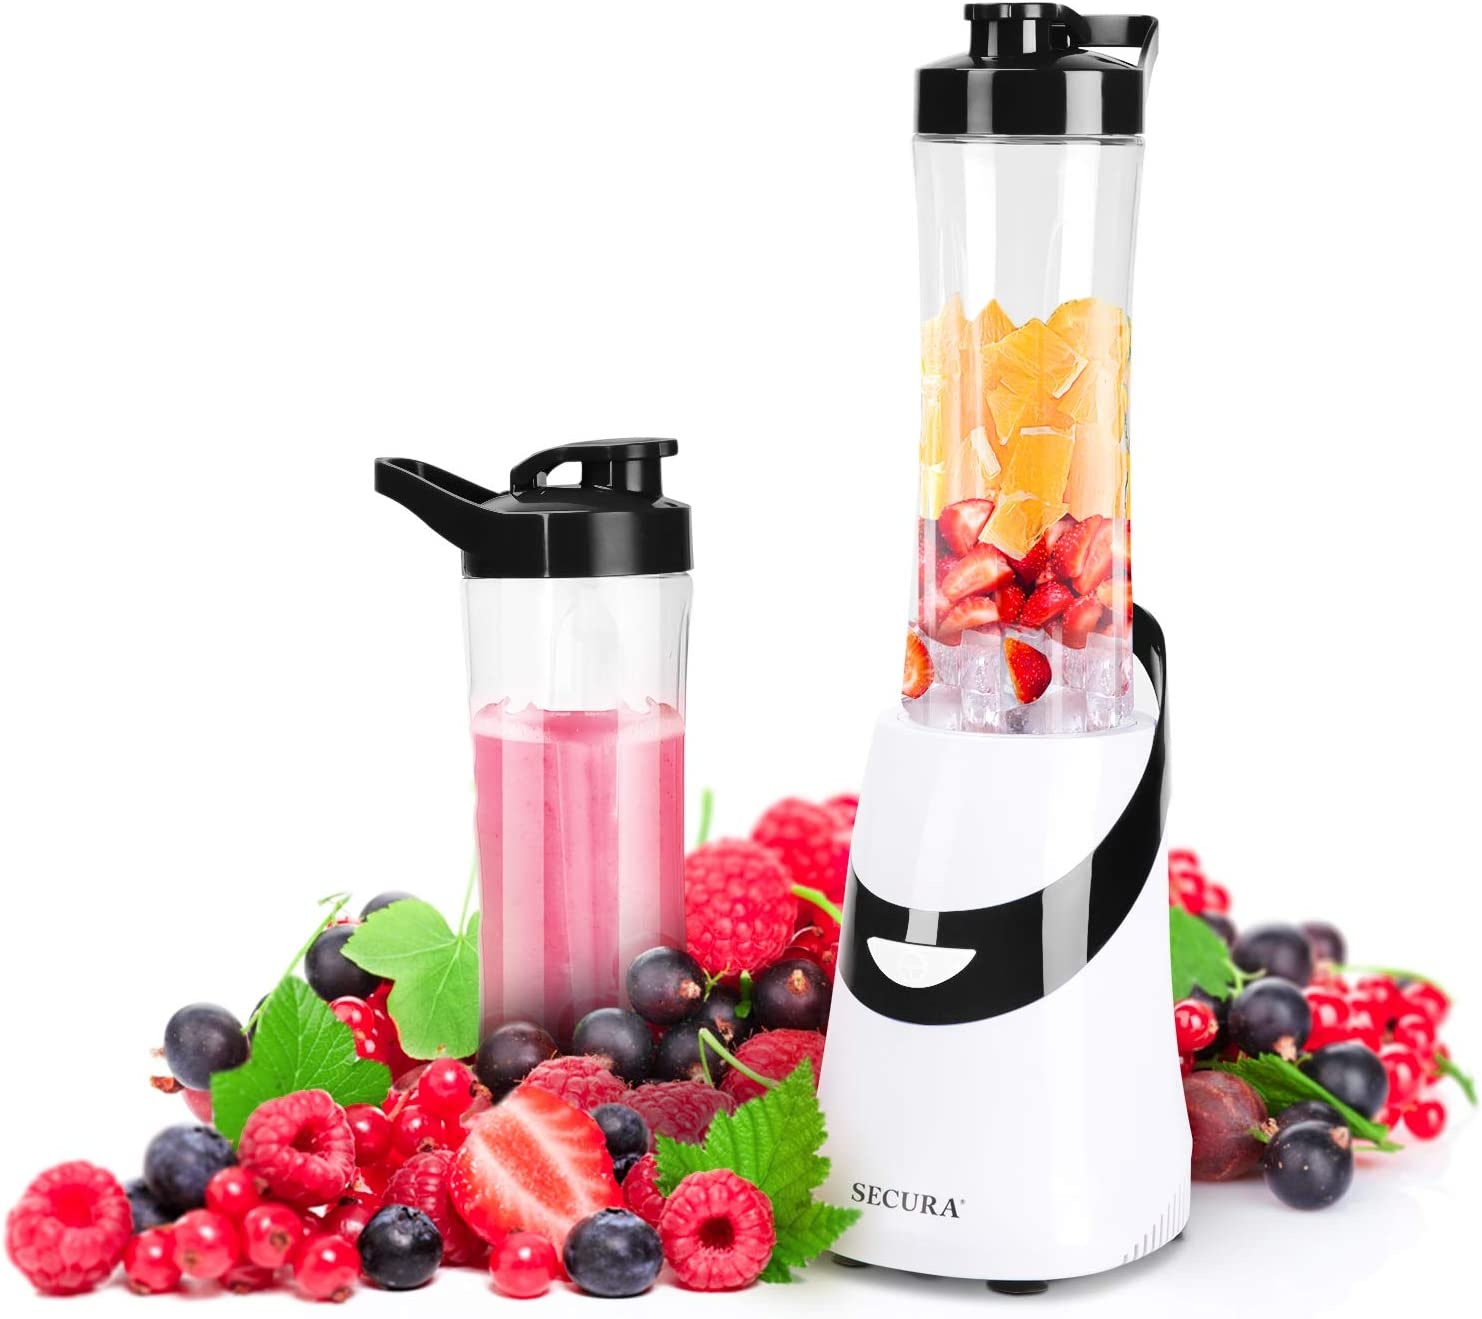 Best Blender For Protein Shakes, Secura Blender